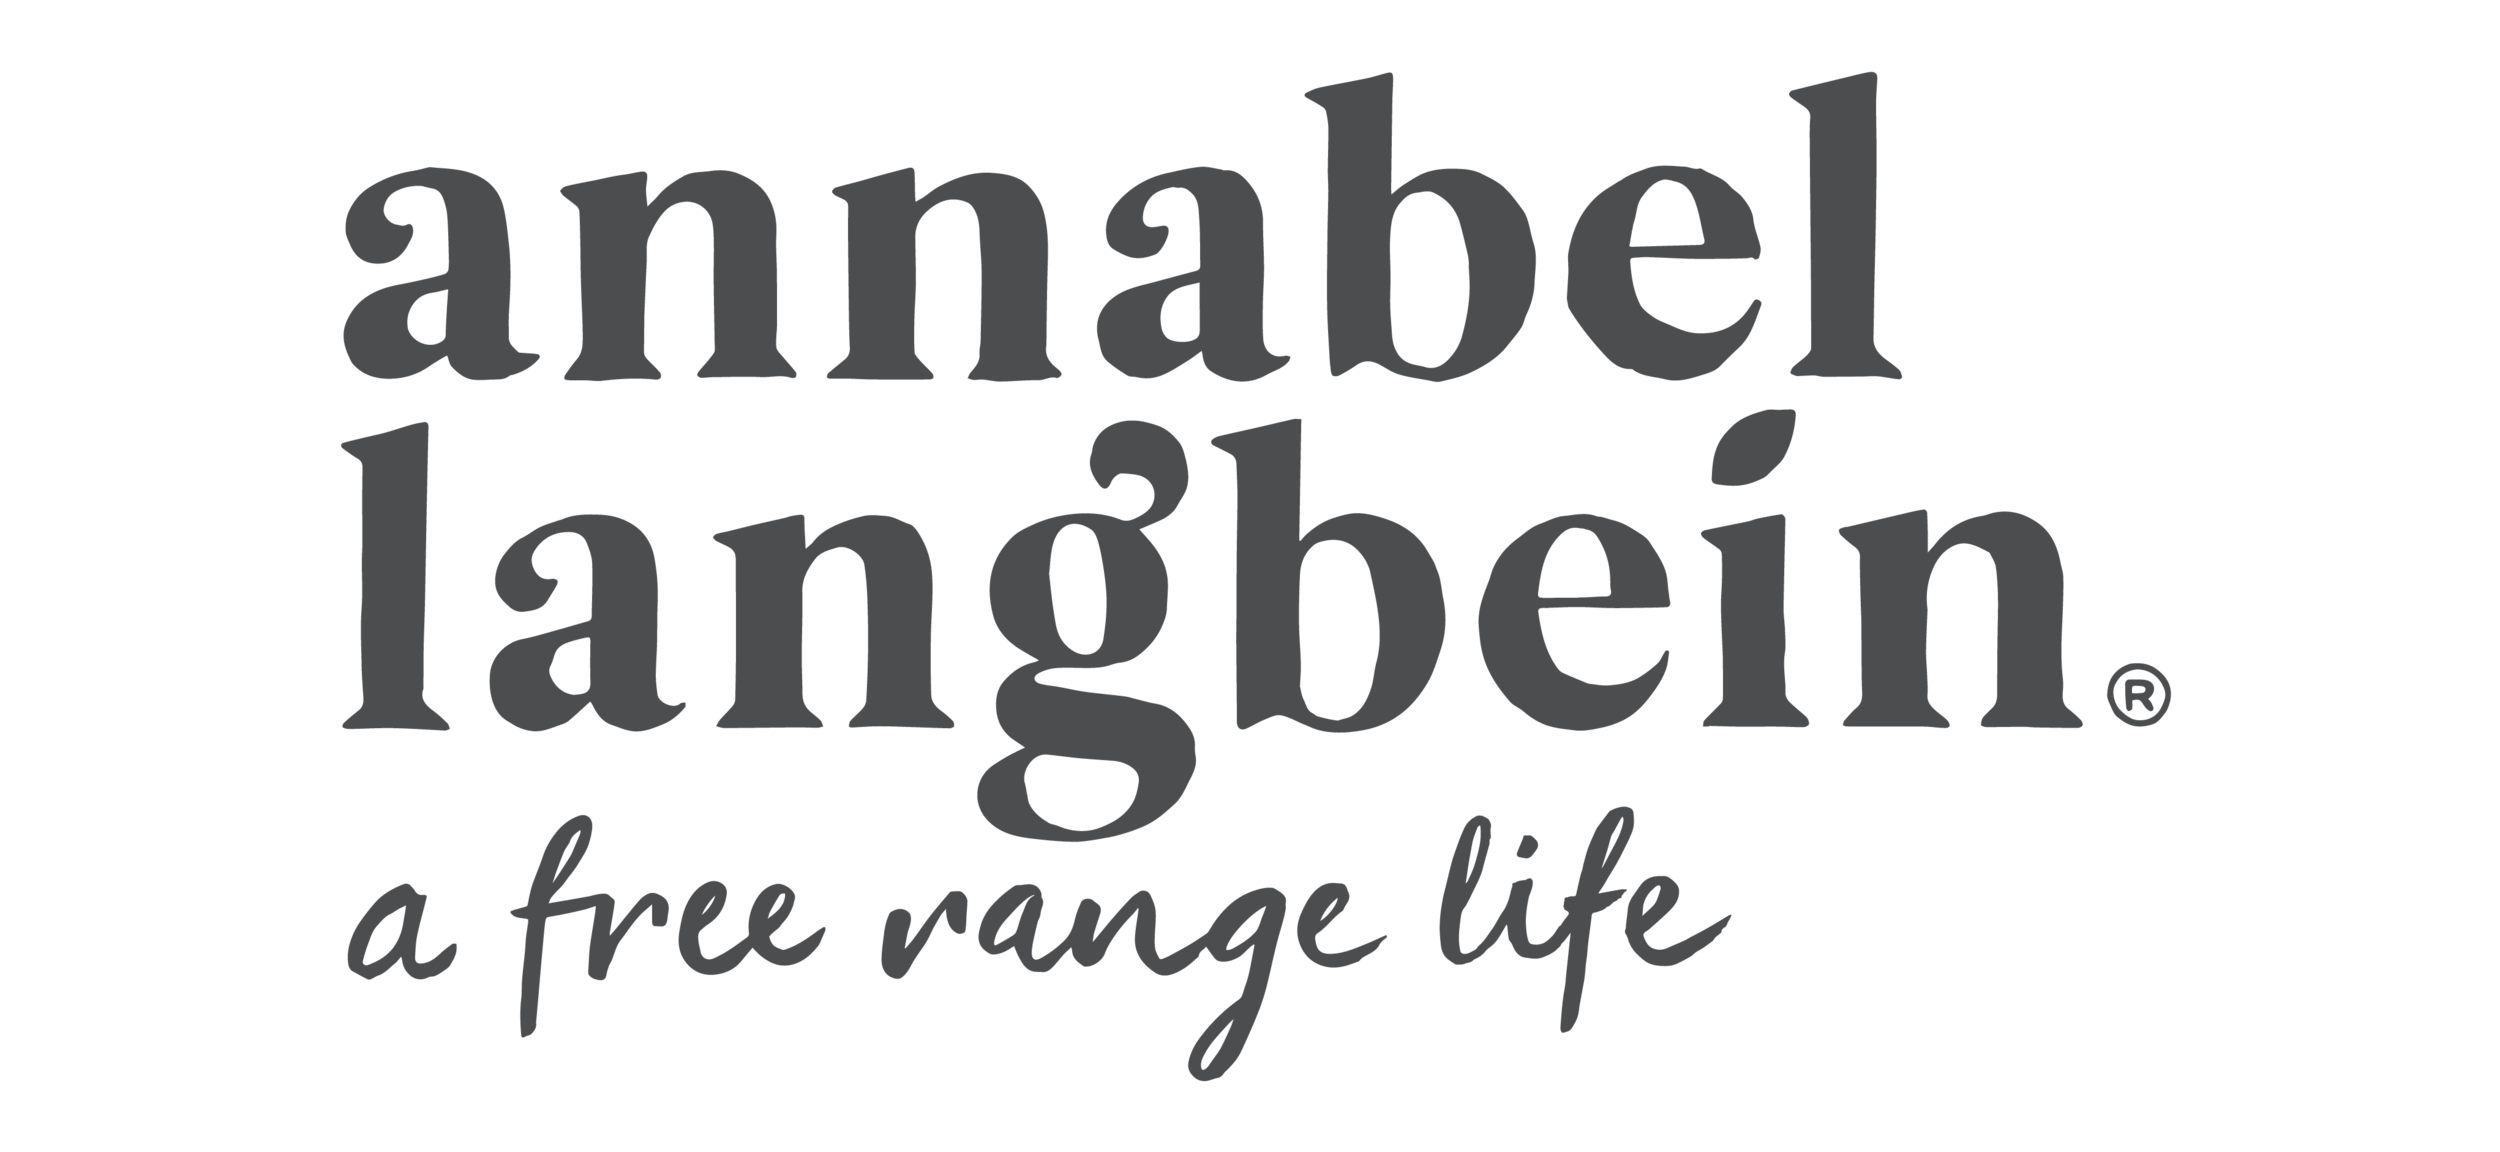 Annabel_Langbein_Logo_Stacked_FRL.png